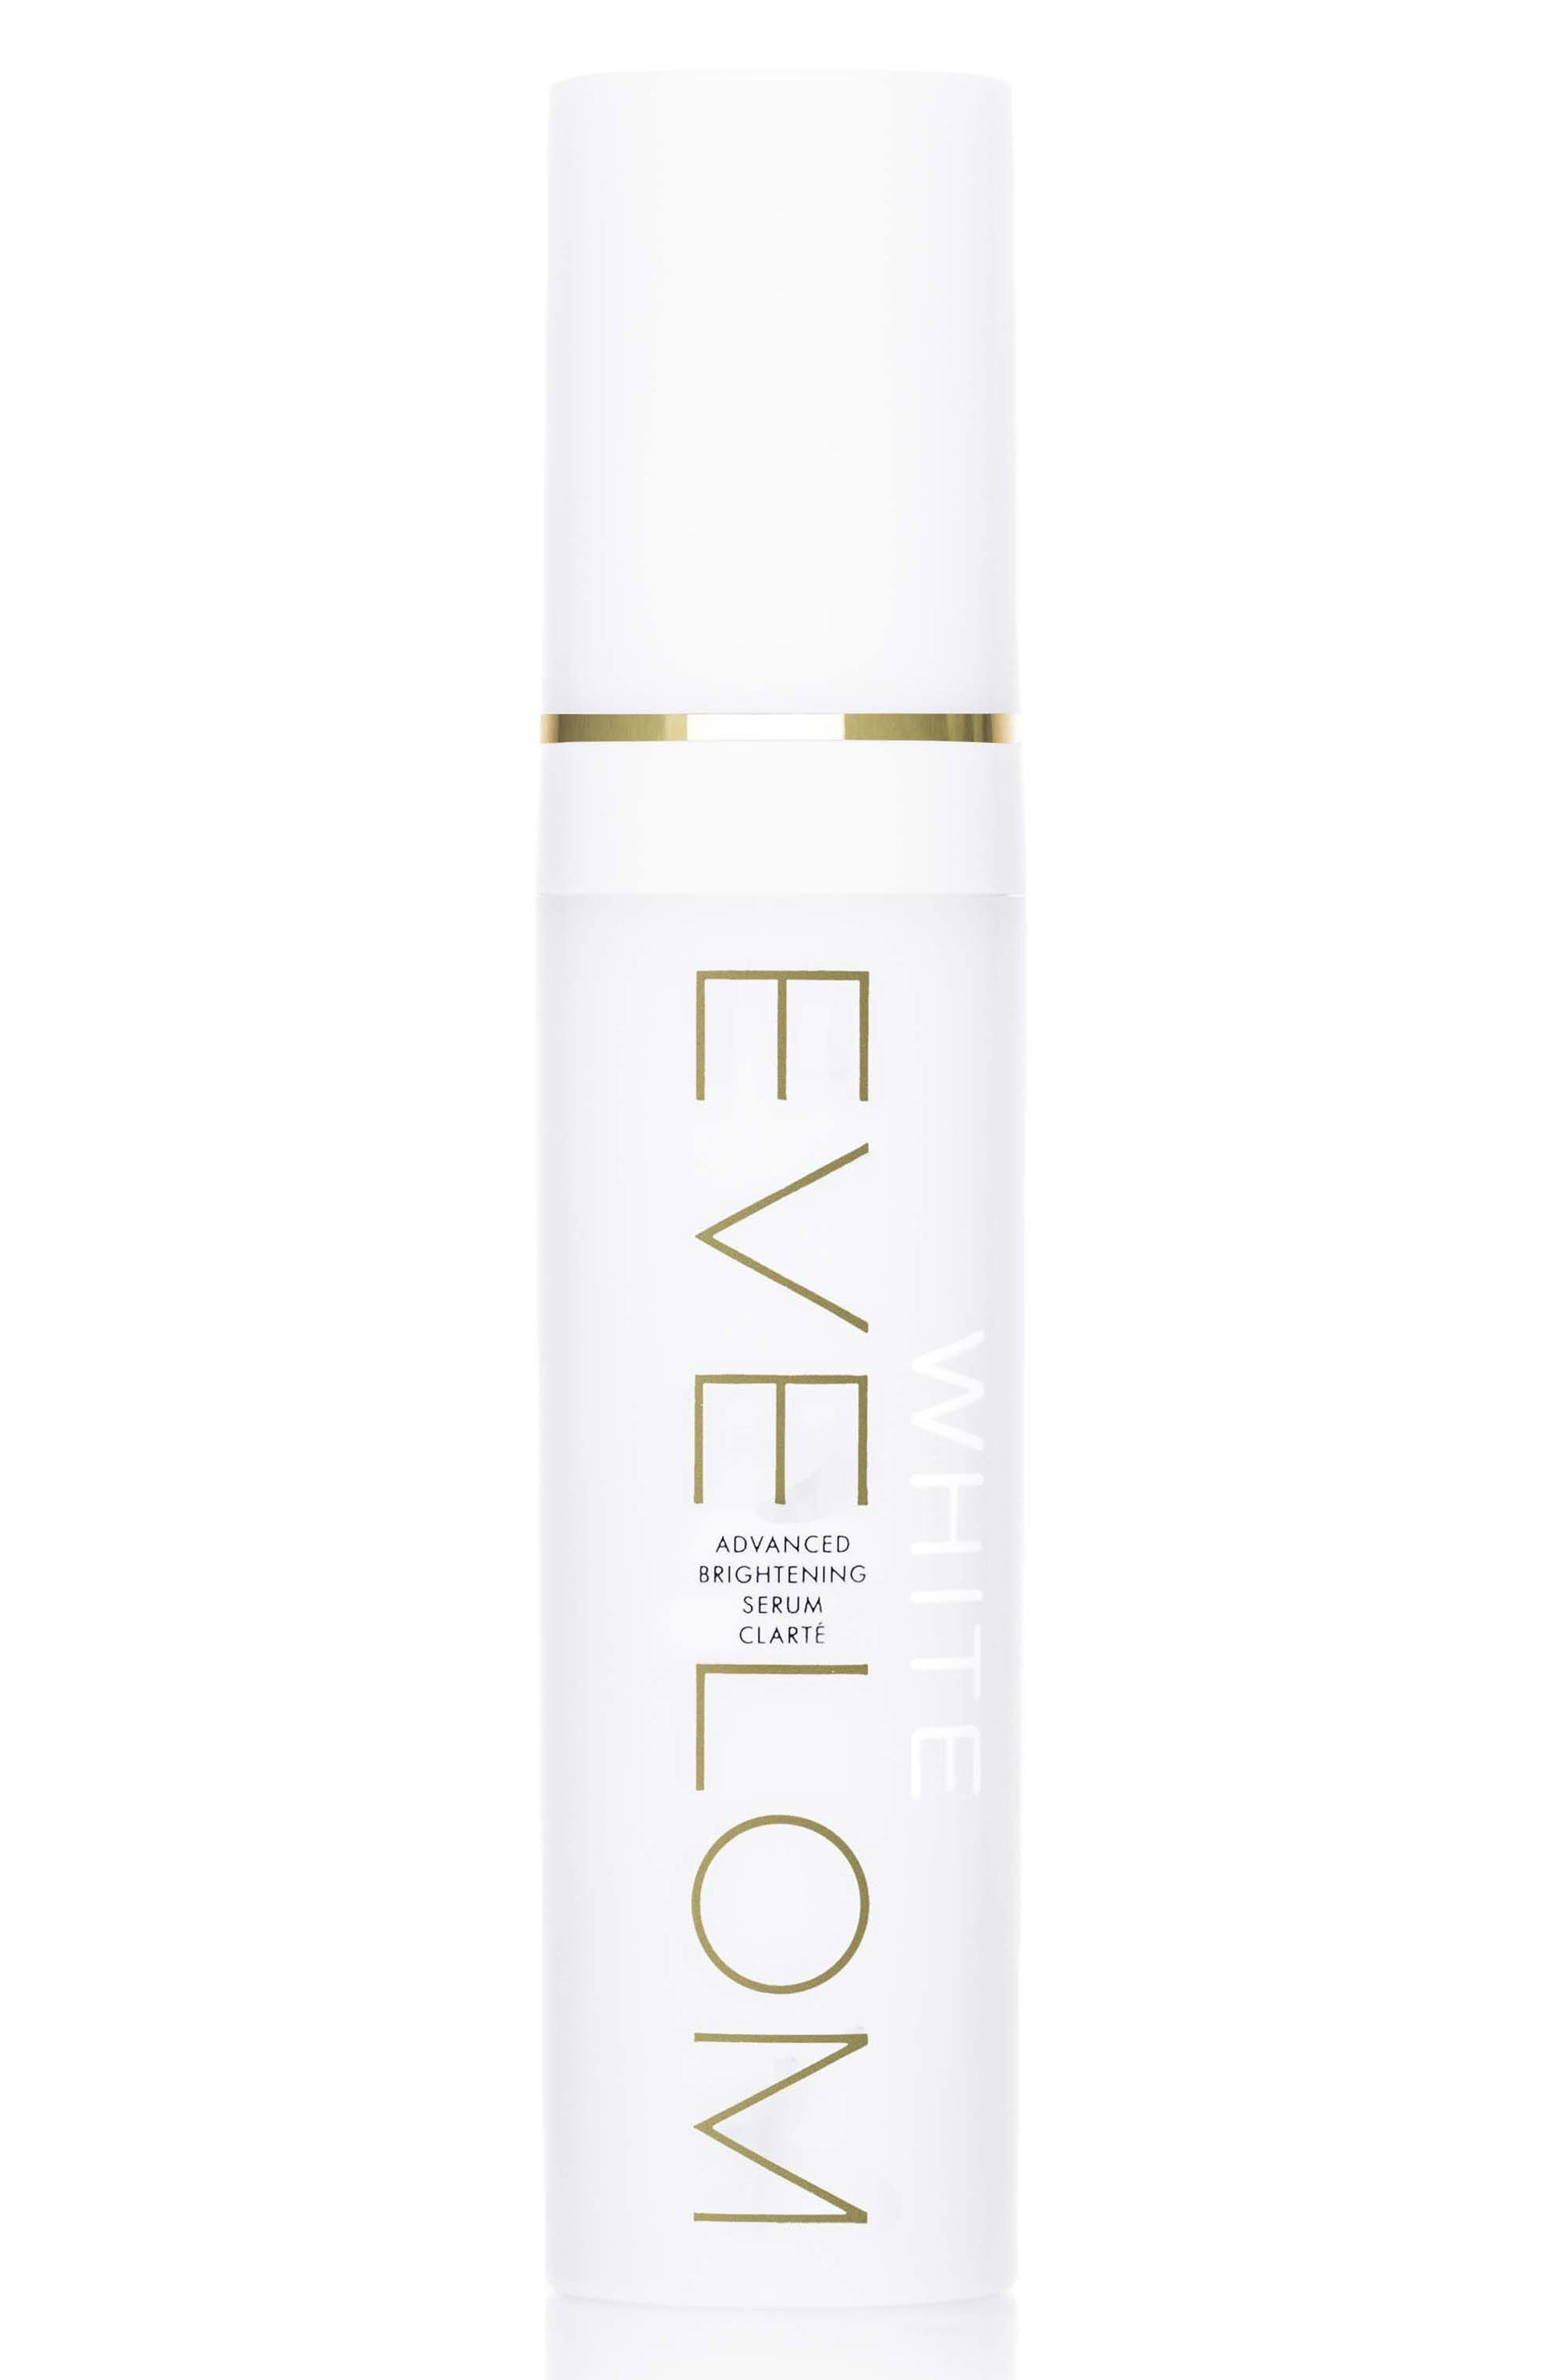 Main Image - SPACE.NK.apothecary EVE LOM White Advanced Brightening Serum